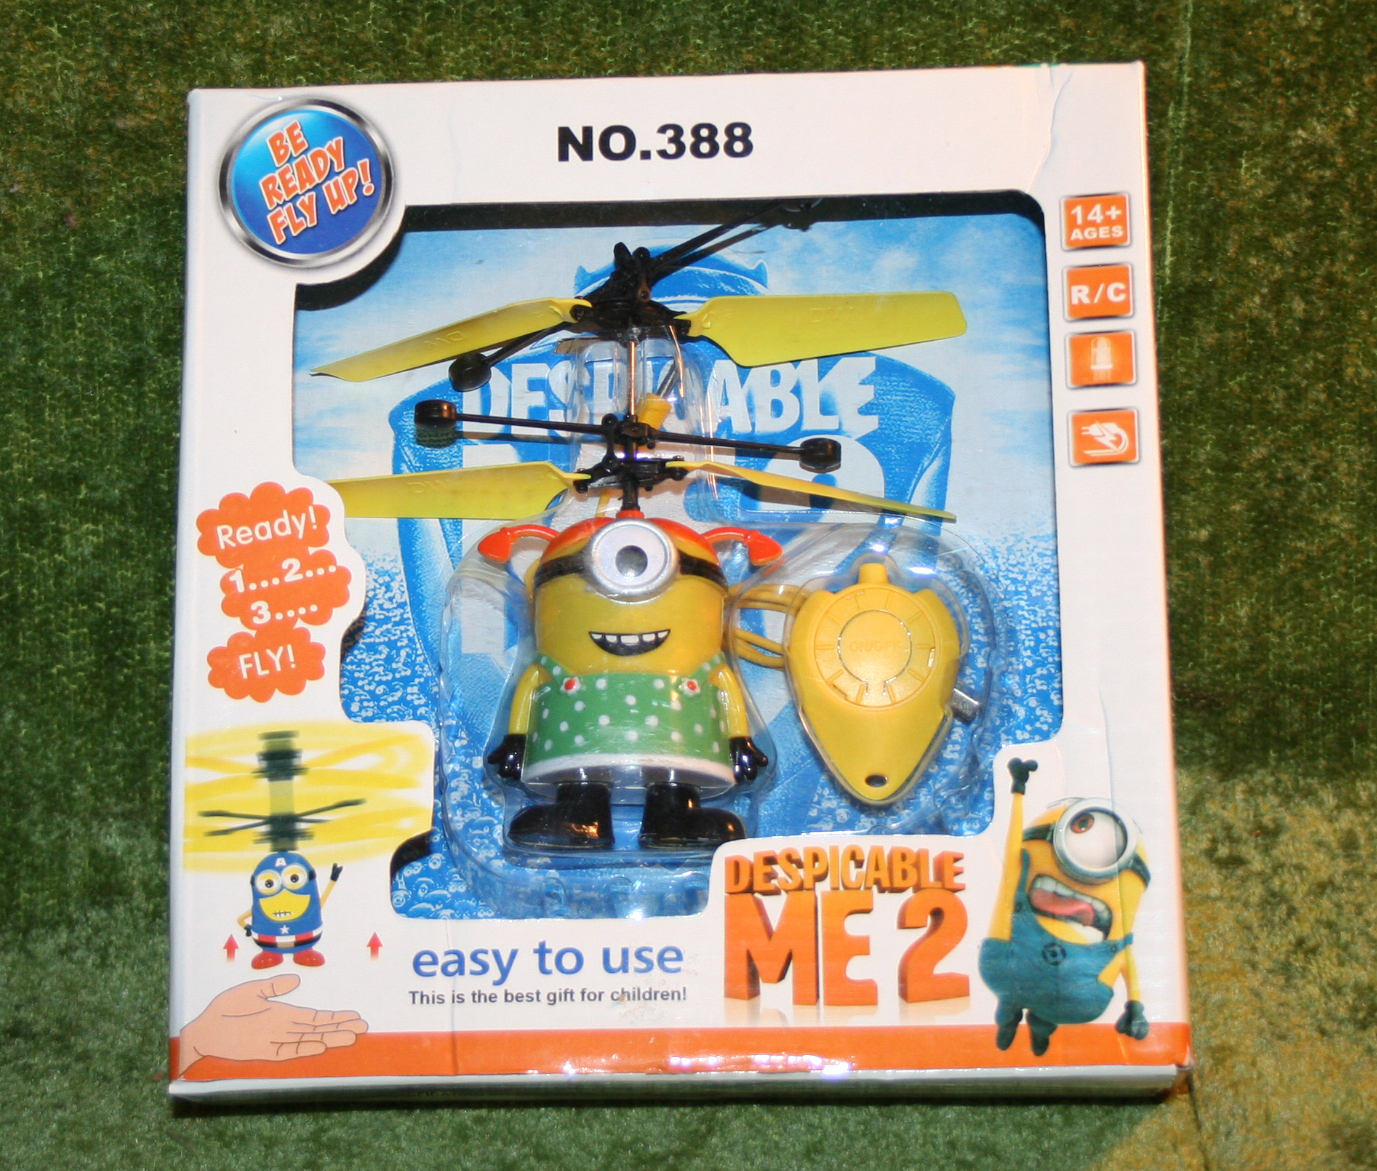 Despicable Me 2. Remote control Flying Minion helicopter.